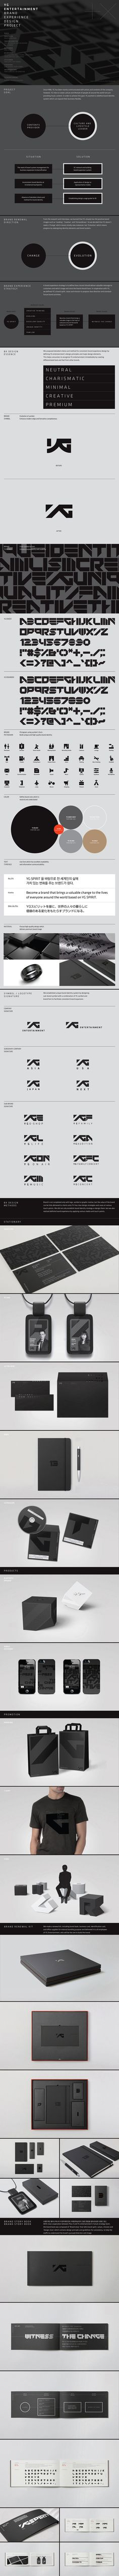 YG entertainment, Brand Identity Renewal by Plus X, Hamburg, Germany - www. Corporate Identity, Corporate Design, Visual Identity, Identity Branding, Branding Process, Brand Identity Design, Graphic Design Branding, Logo Design, Resume Design